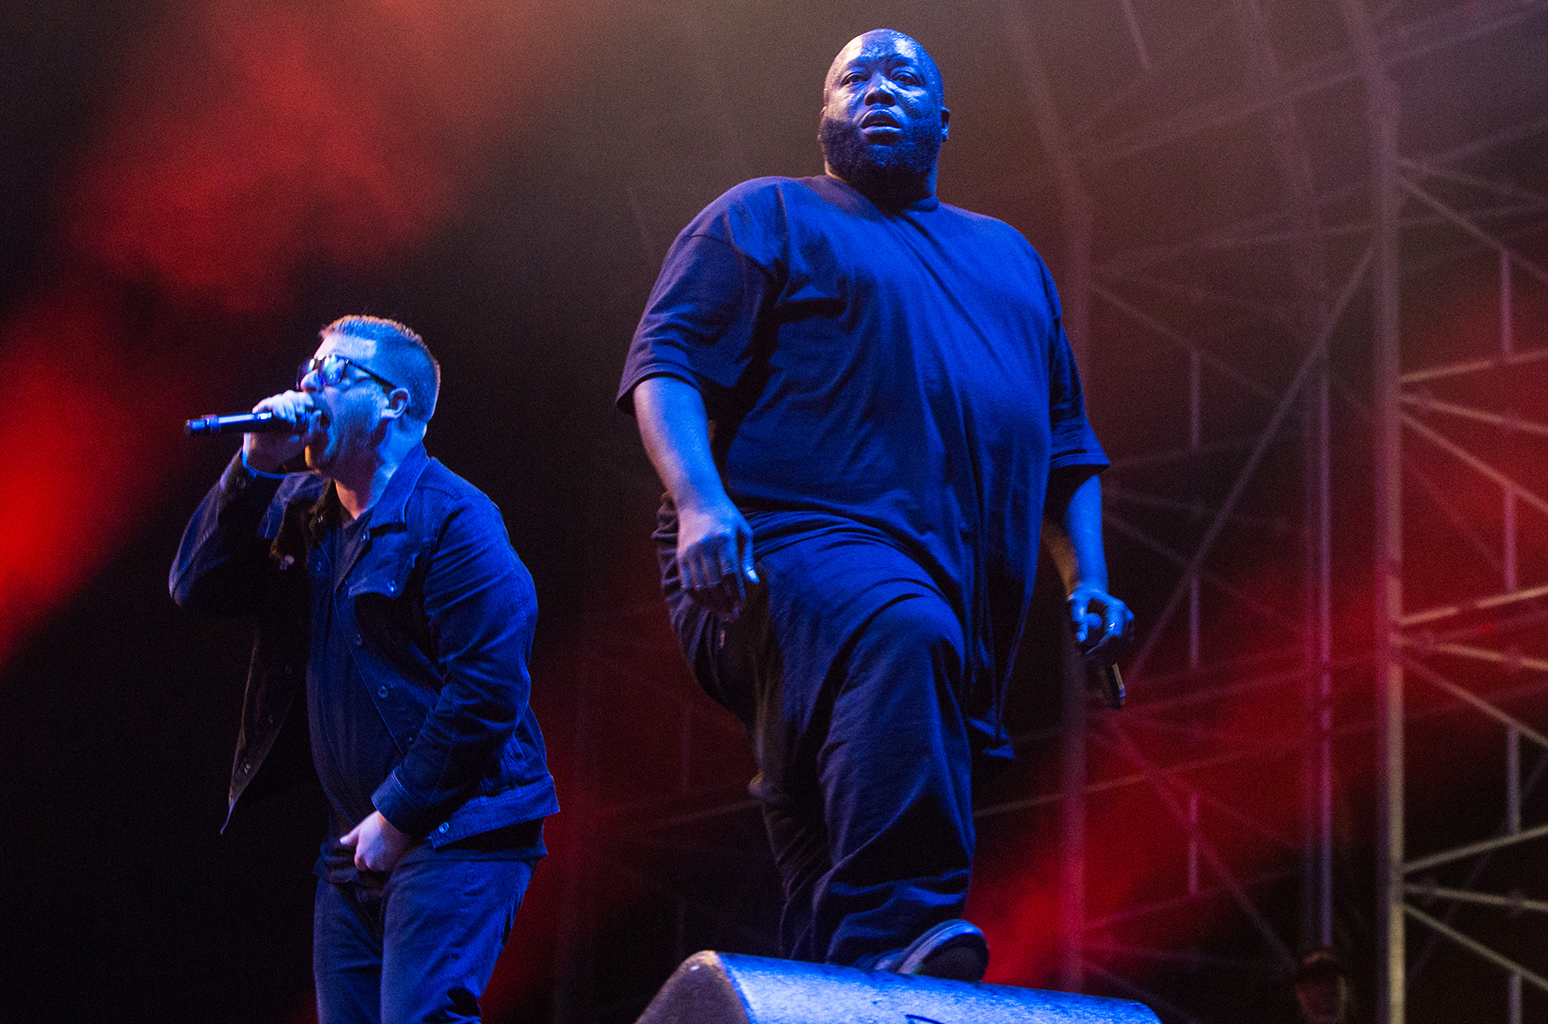 Run The Jewels action figures star in 'Walking In The Snow' music video